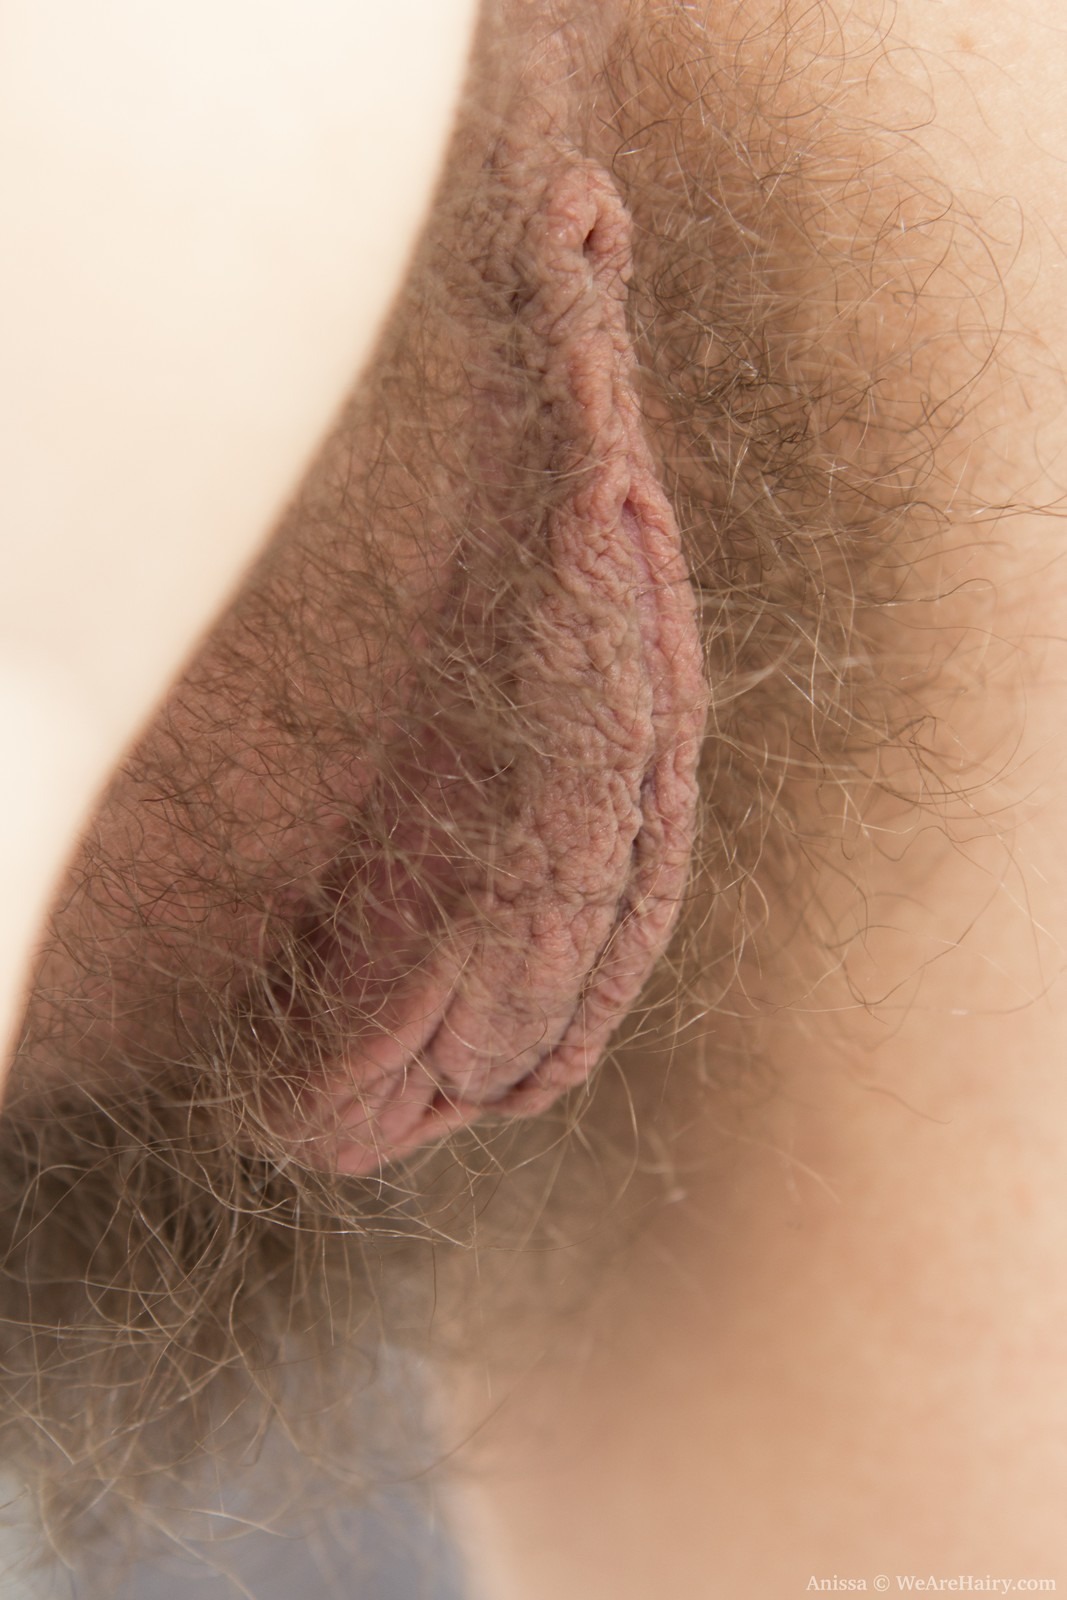 Hairy pussy pics from behind